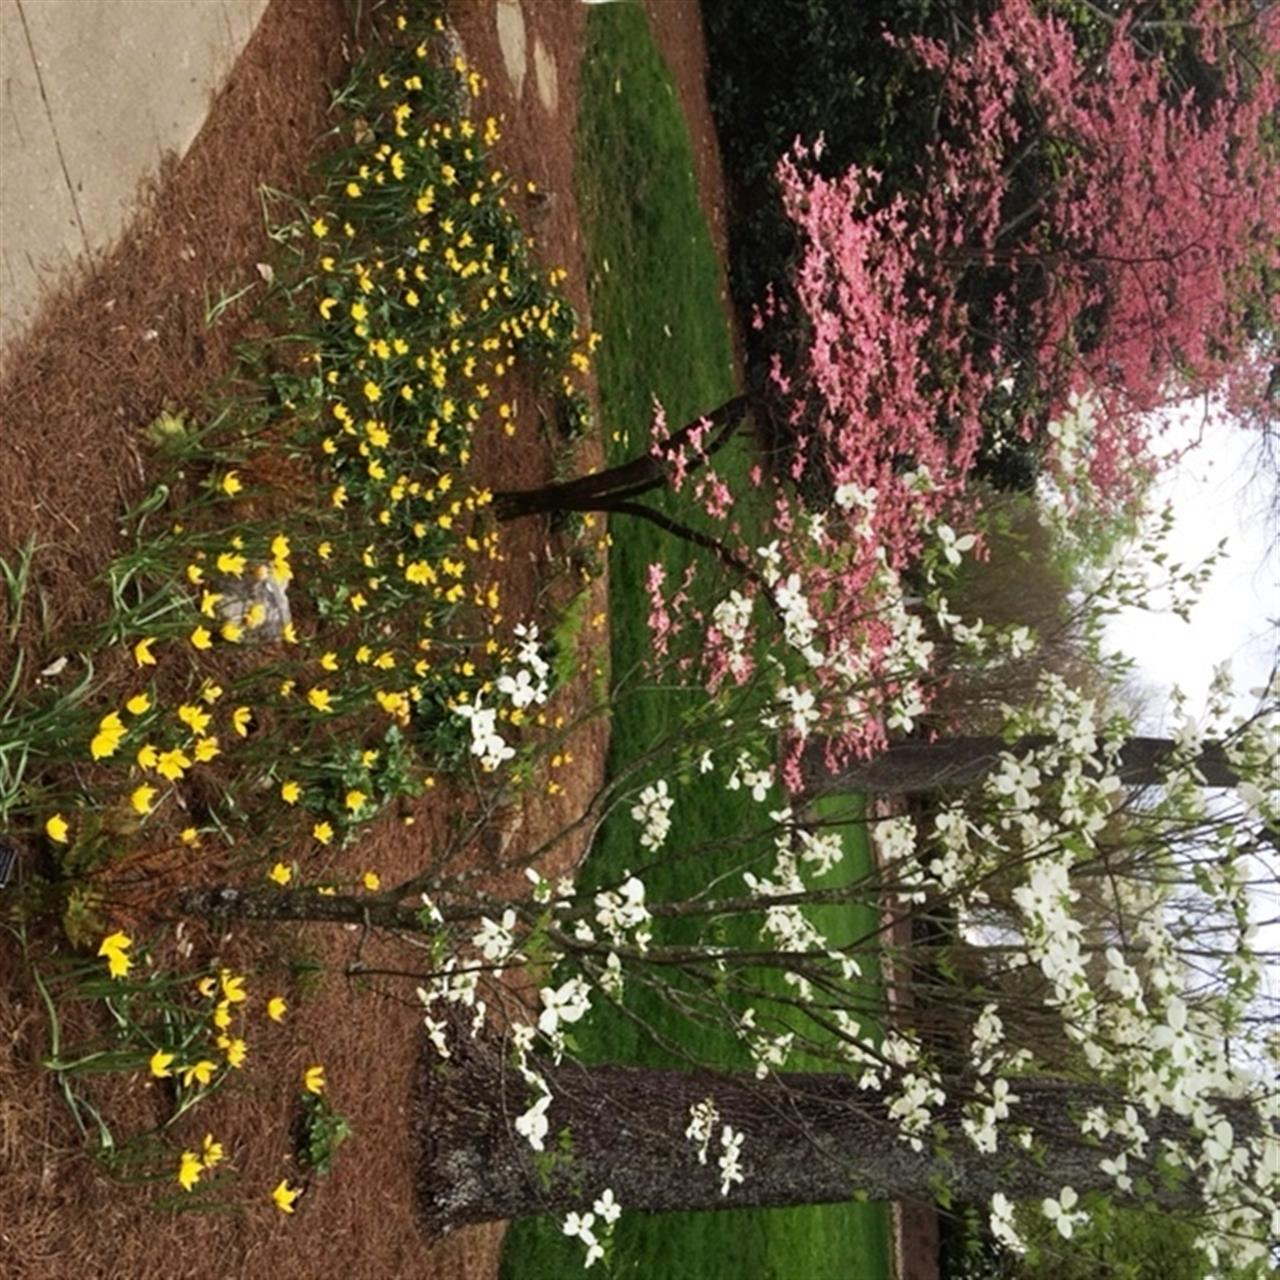 Tulips and Dogwoods in Bloom at Cheekwood #leadingRElocal #Cheekwood Botanical Gardens #Nashville, TN